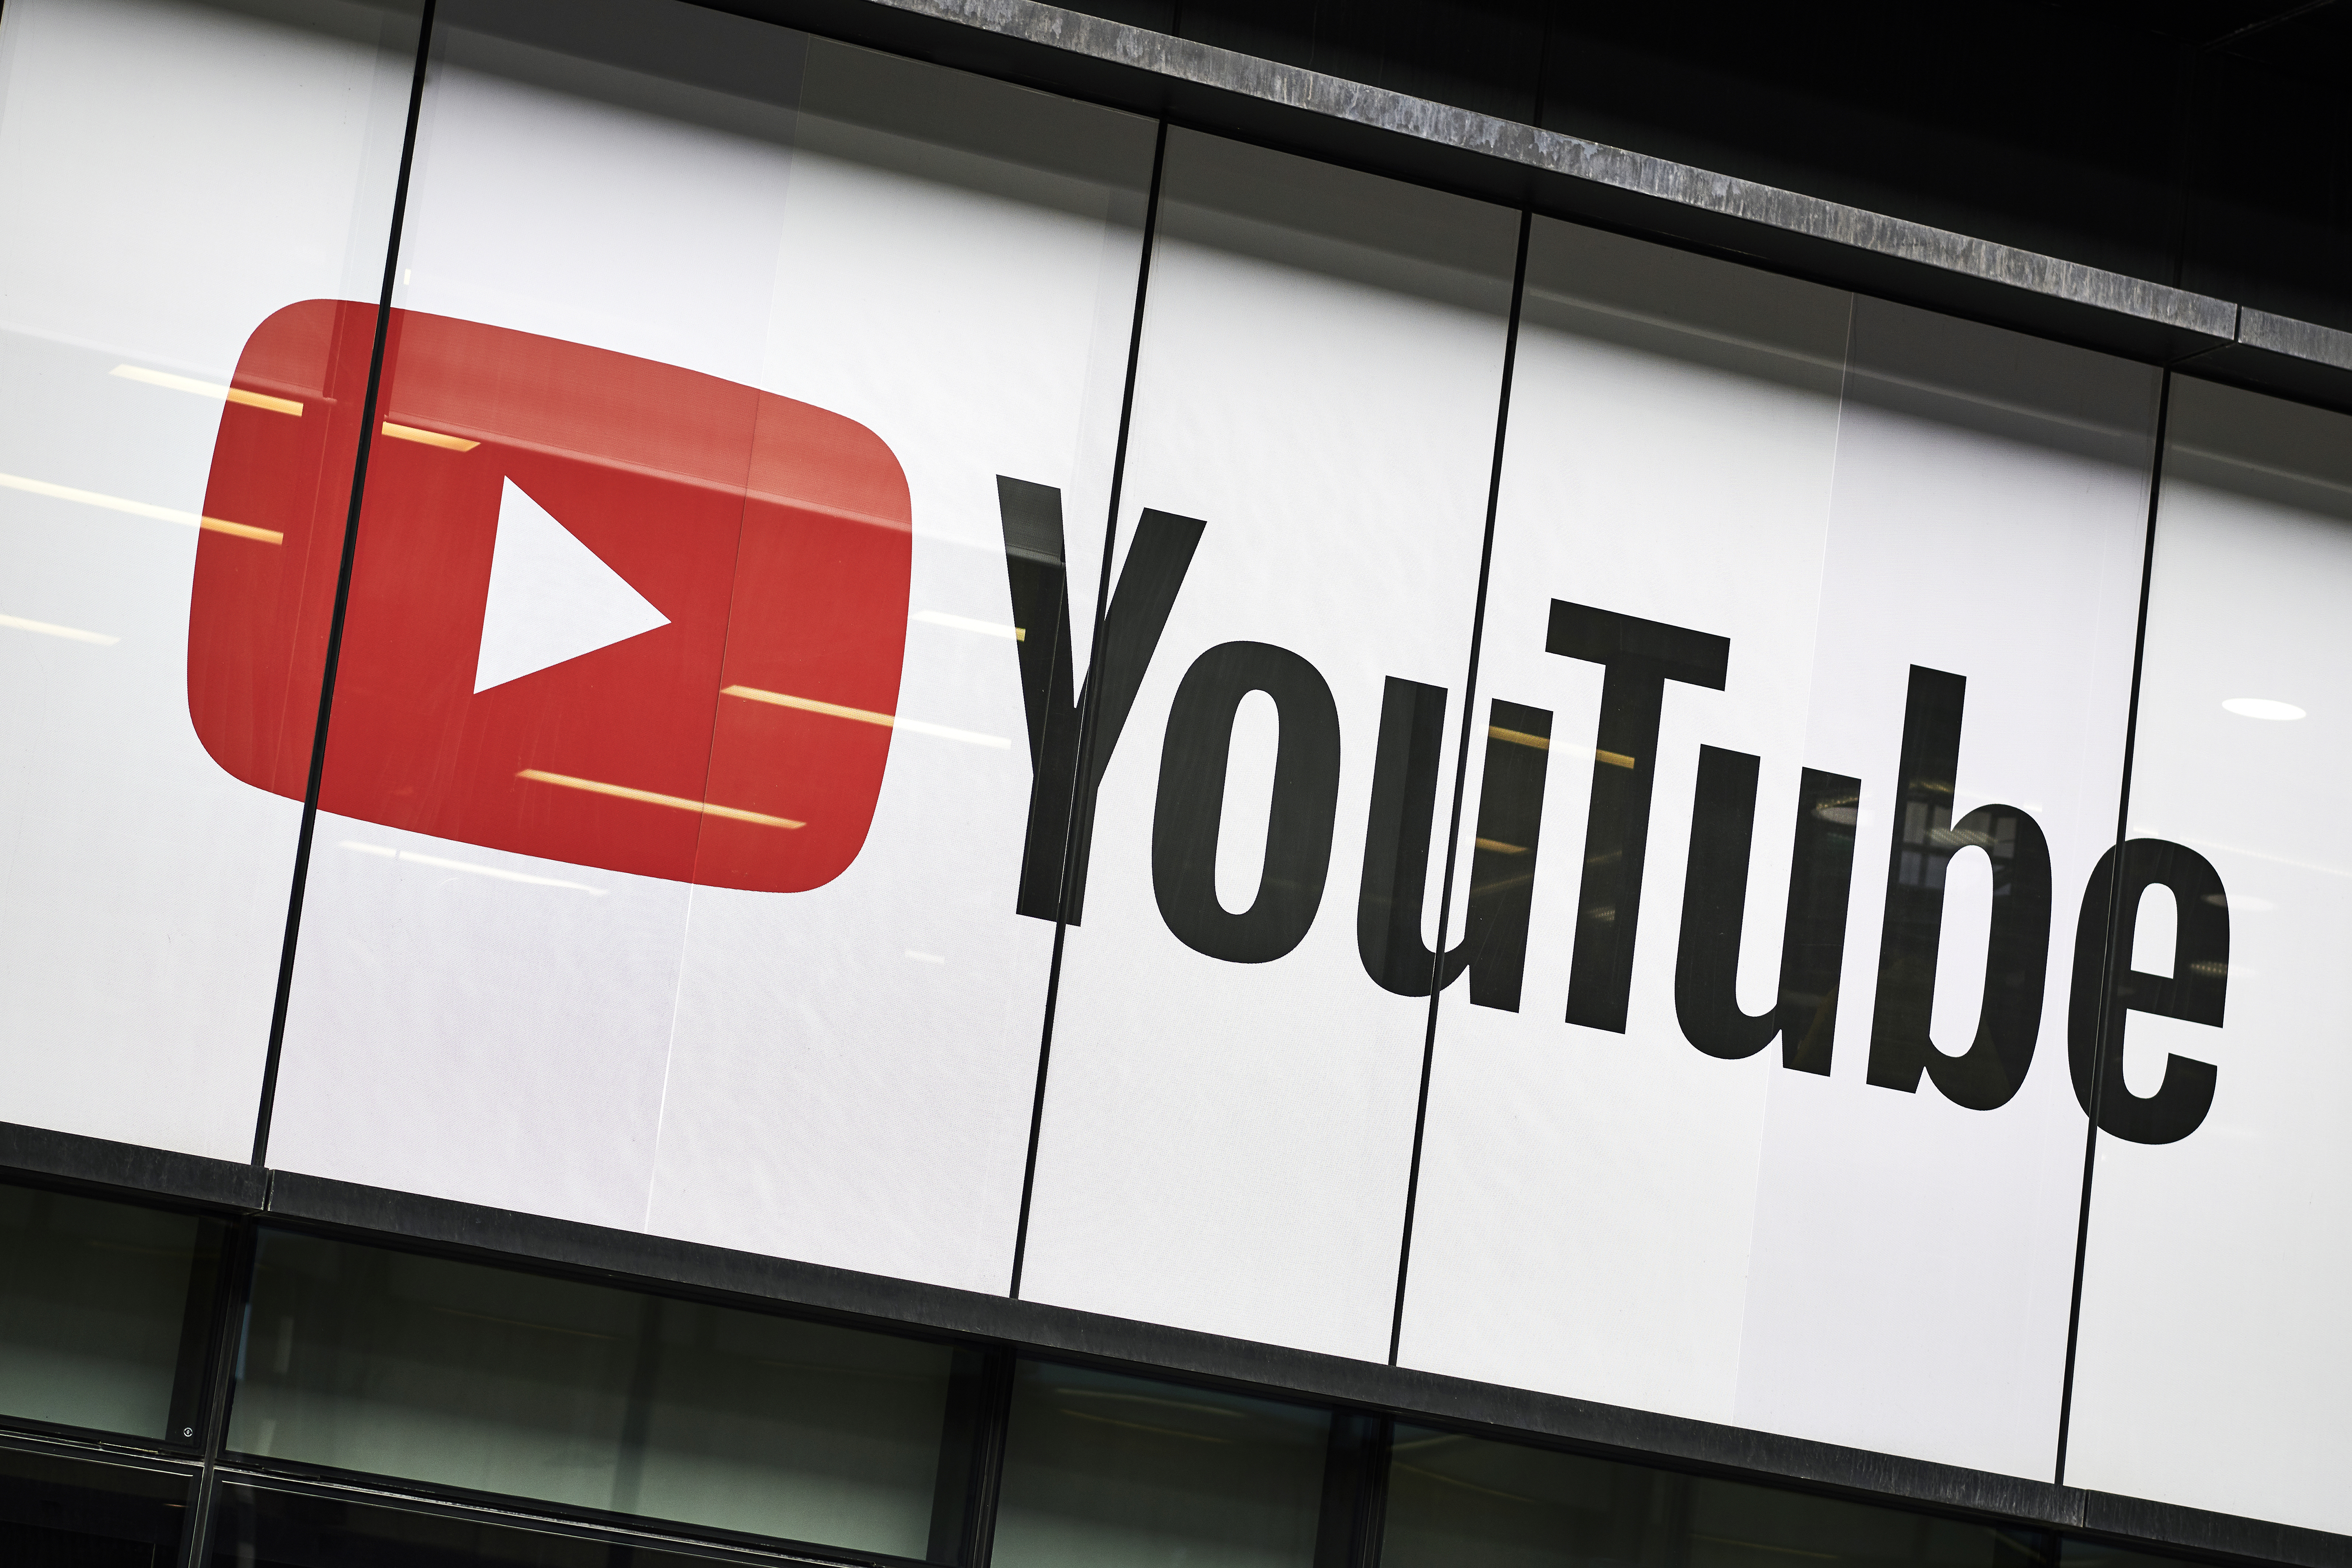 A YouTube logo sign.